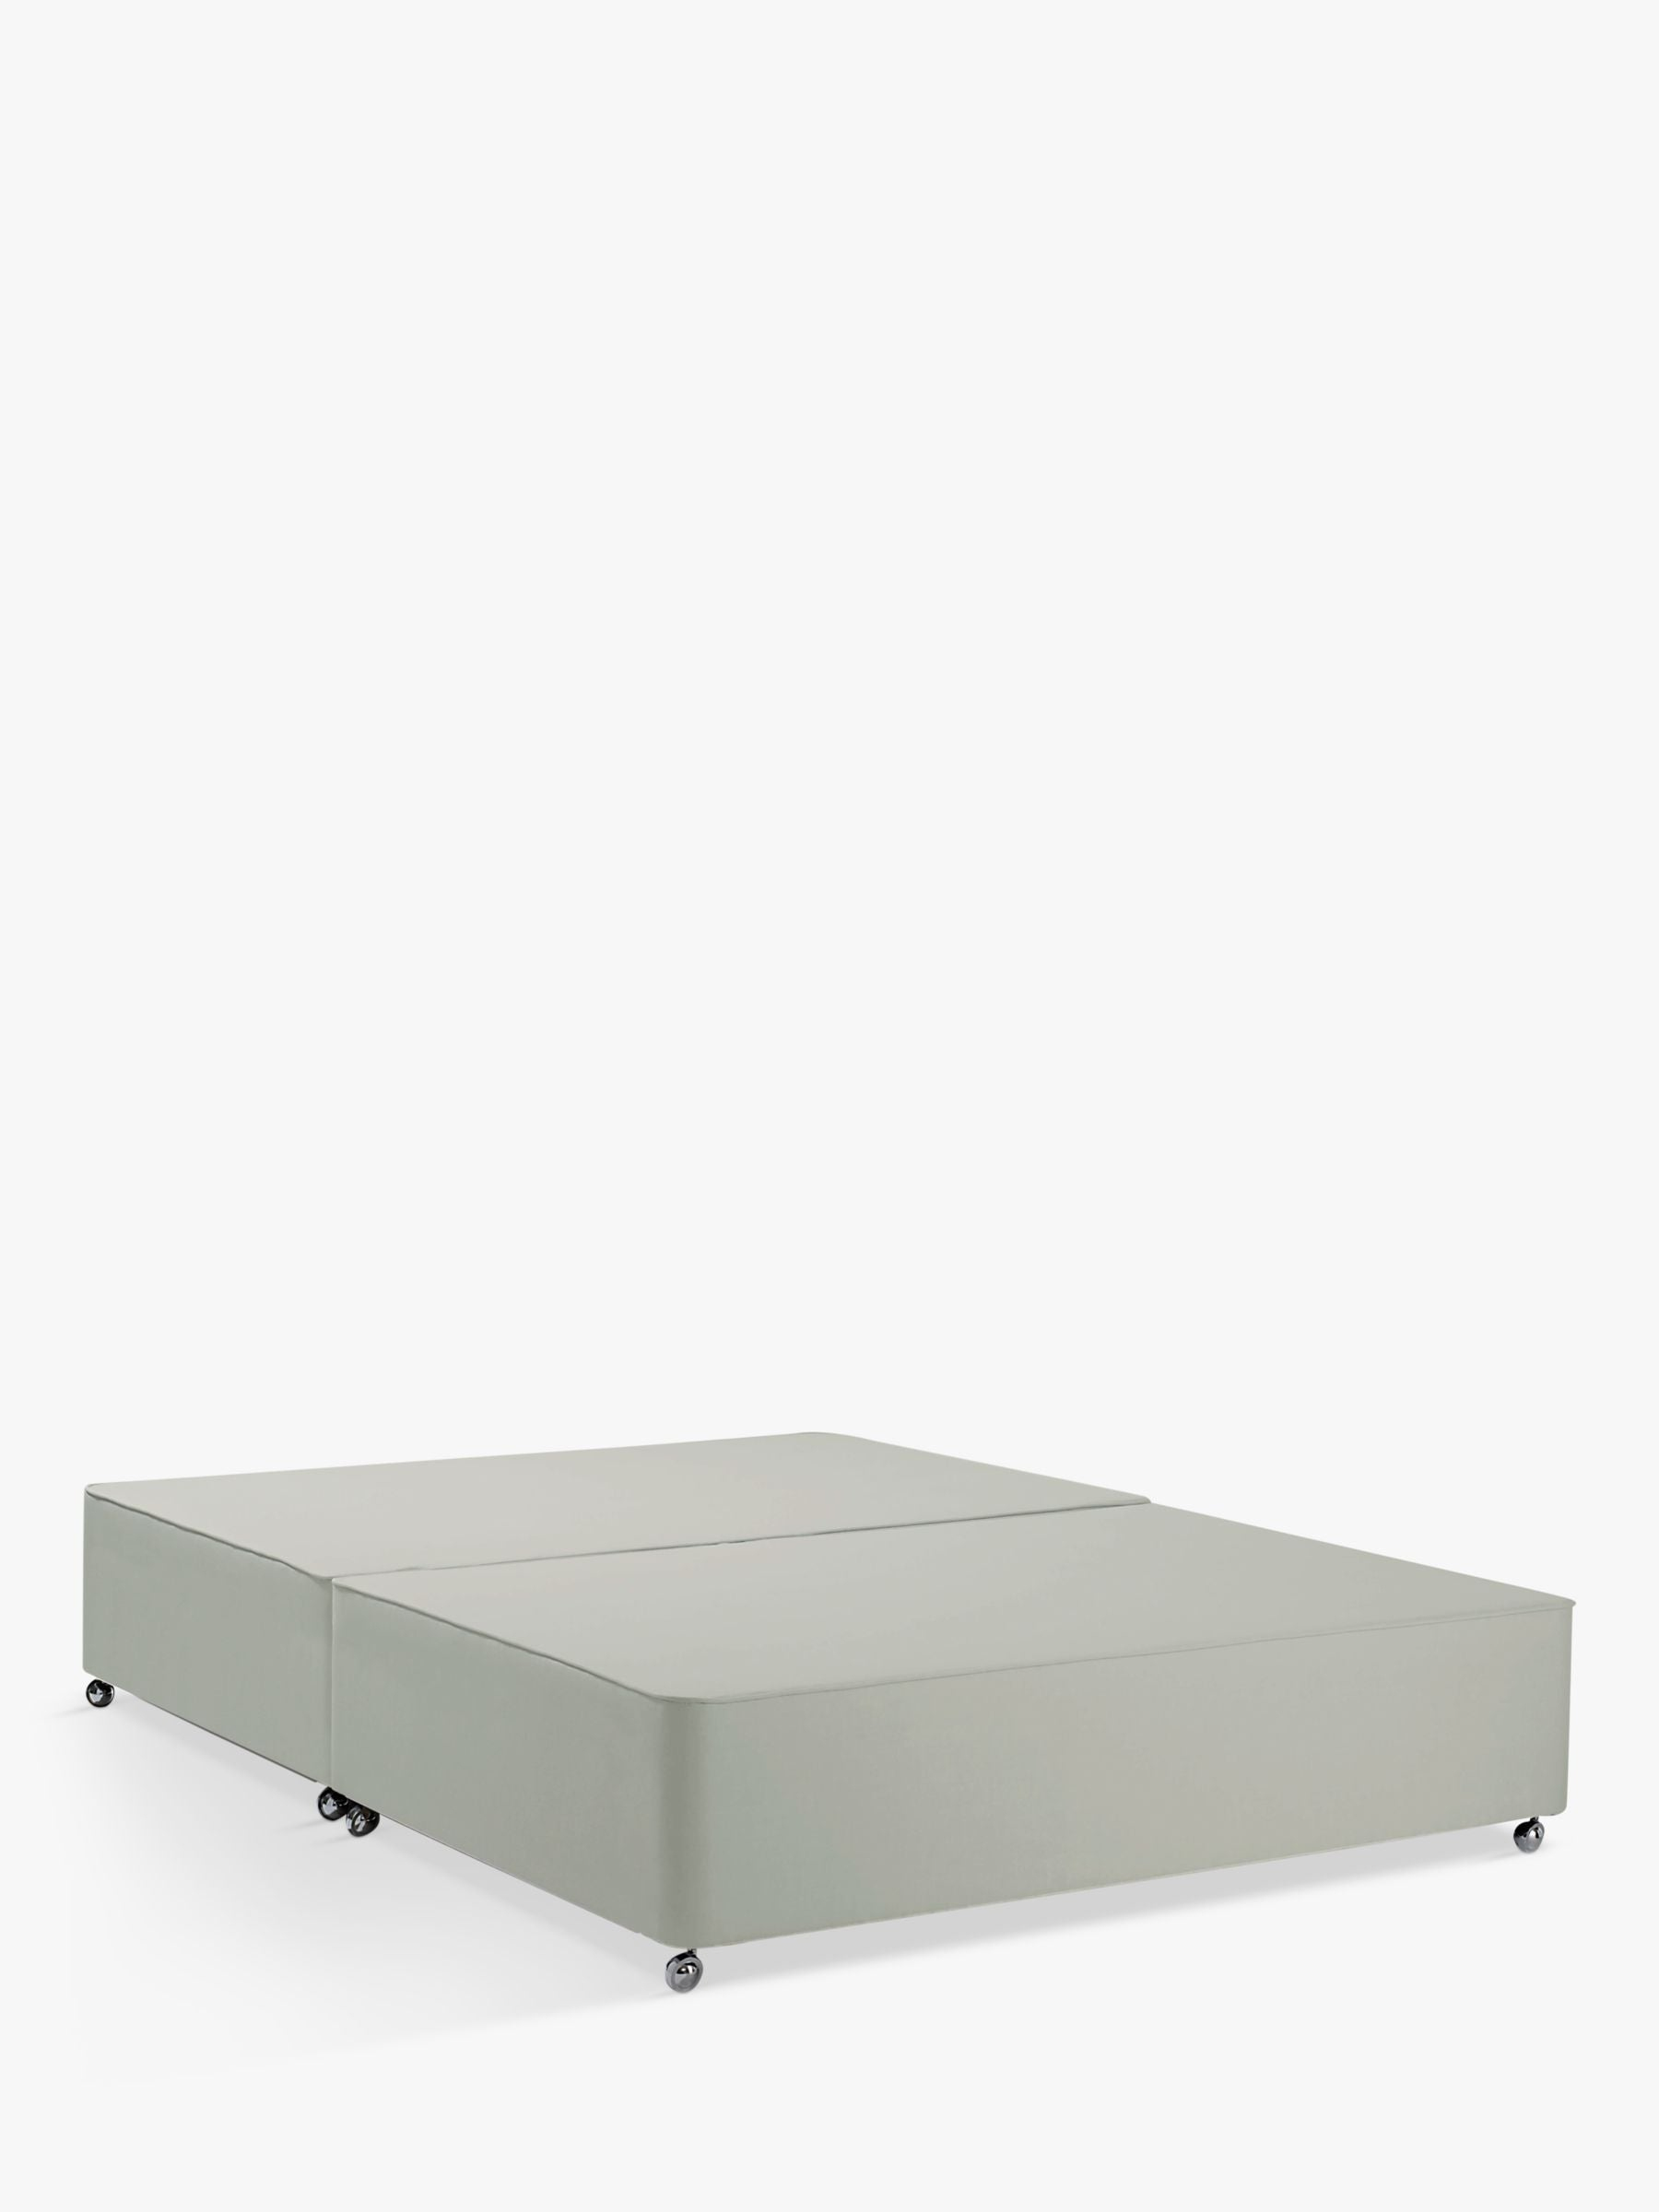 John Lewis & Partners Non-Sprung Upholstered Divan Base, Small Double, Canvas Stone Grey, FSC-Certified (Pine)